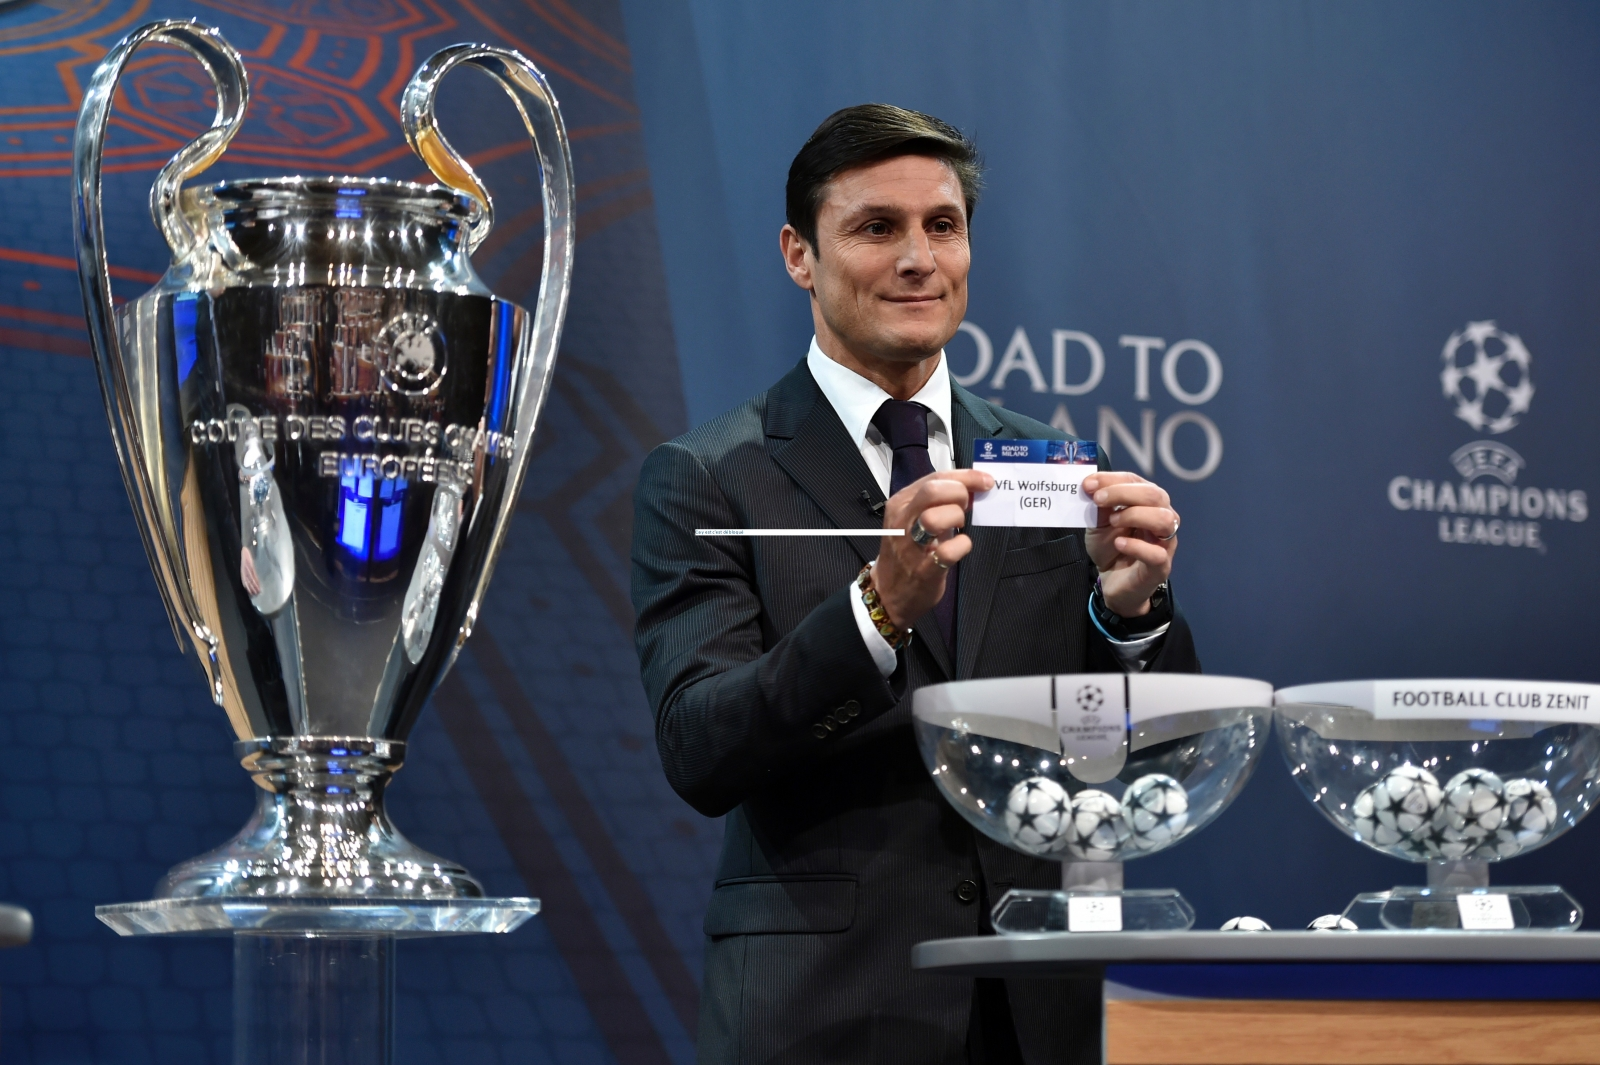 Champions League 2016/17 group stage draw: Watch live on ...